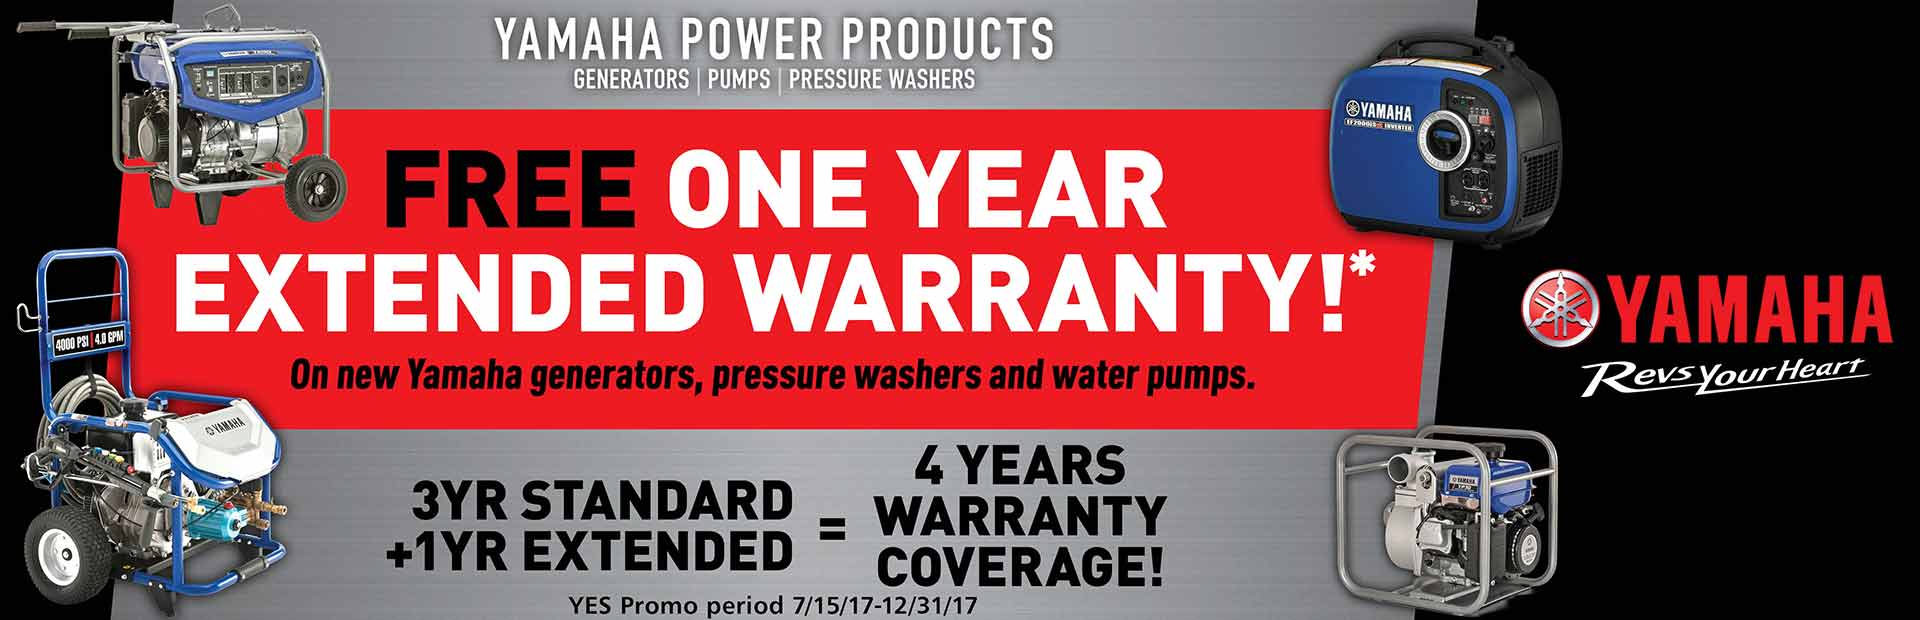 Hilliard lawn garden provides premium outdoor power for Yamaha extended warranty